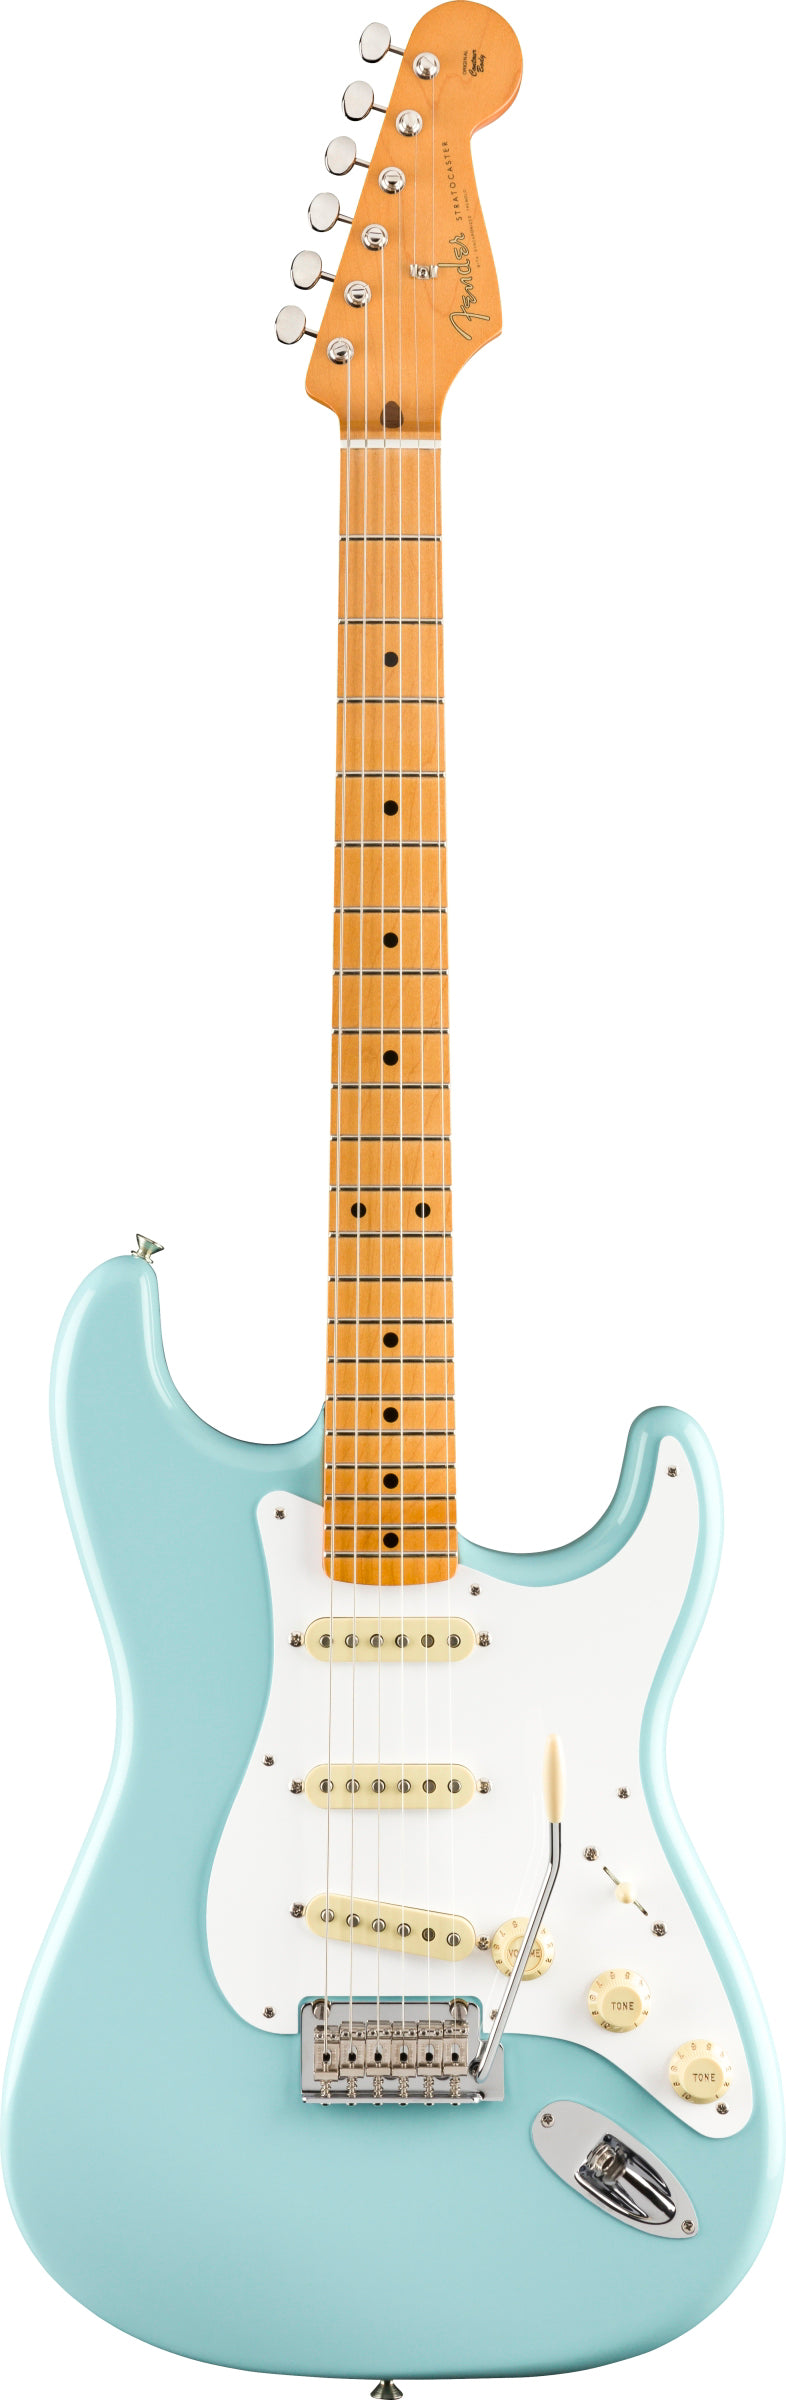 Fender Vintera '50s Stratocaster Modified - Daphne Blue